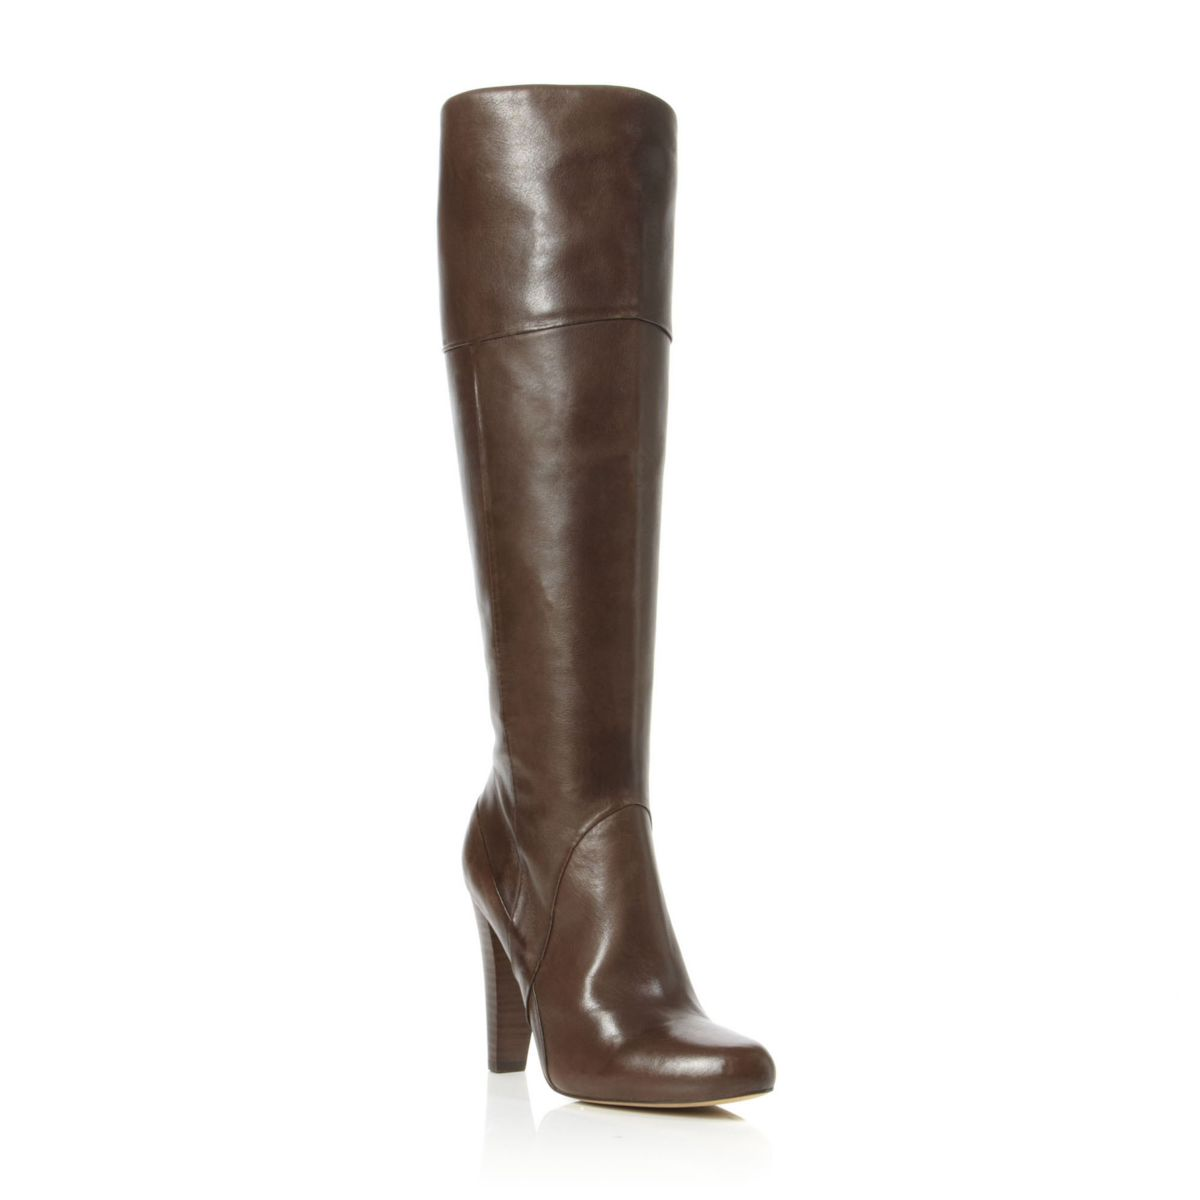 See all results for knee high brown boots for women. Rampage Women's Hansel Zipper and Buckle Knee-High Riding Boot. by Rampage. $ - $ $ 22 $ 79 99 Prime. FREE Shipping on eligible orders. Some sizes/colors are Prime eligible. 4 out of 5 stars